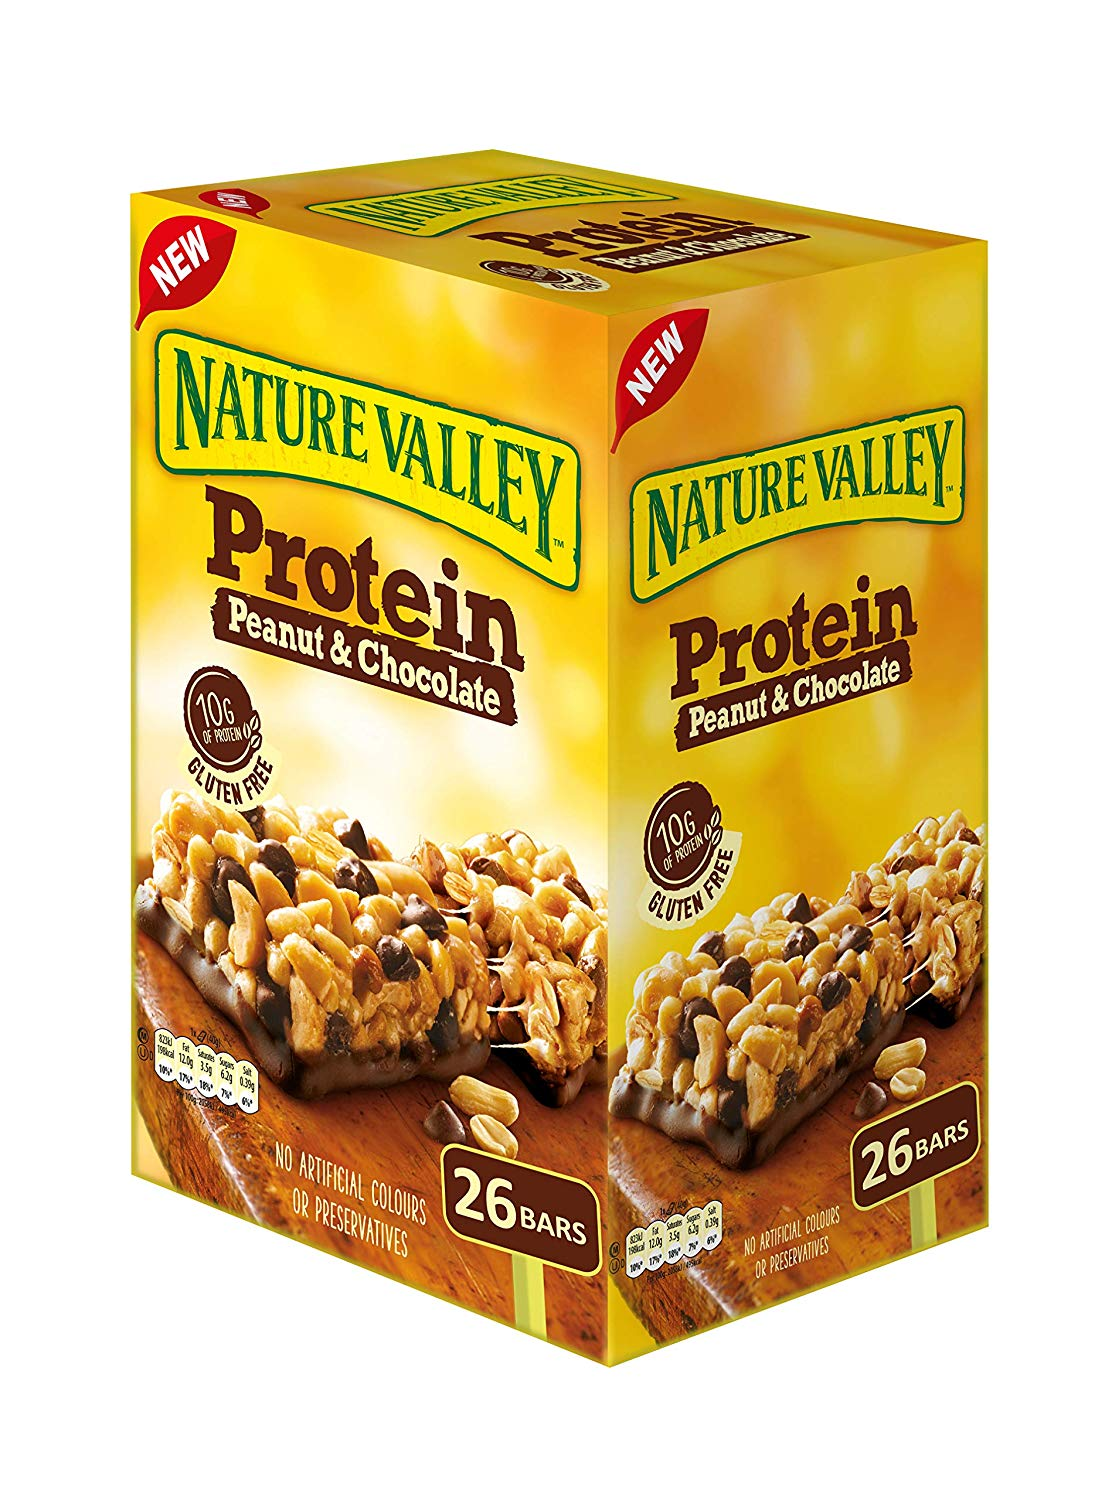 Protein Peanut & Chocolate Gluten Free Cereal Bars (Pack of 26 Bars)